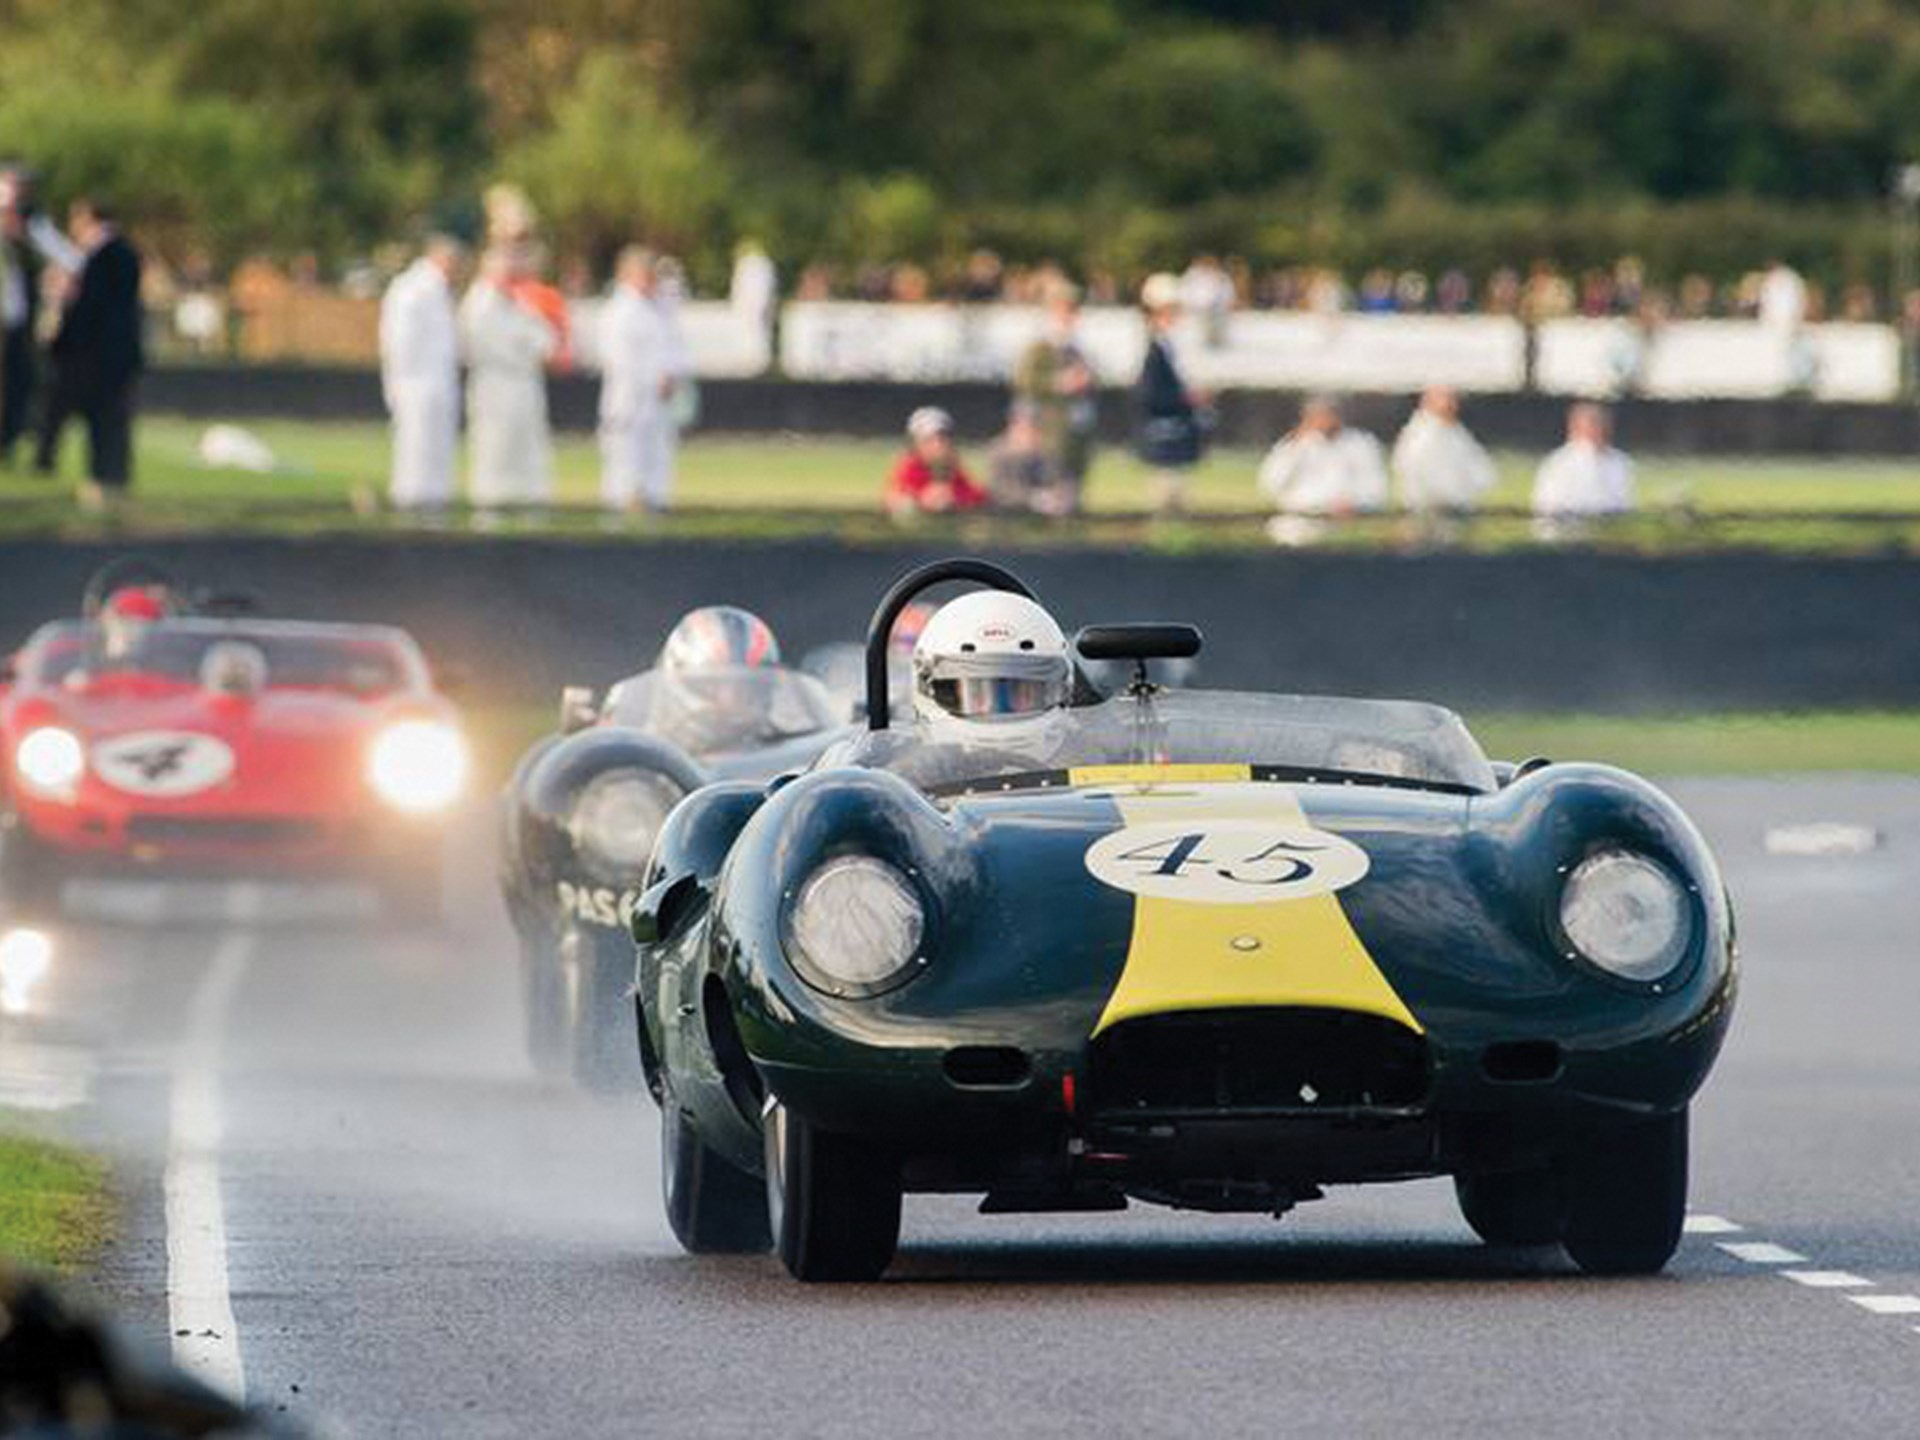 The Lister-Jaguar as seen at the Goodwood Revival in 2011 during the Sussex Trophy.